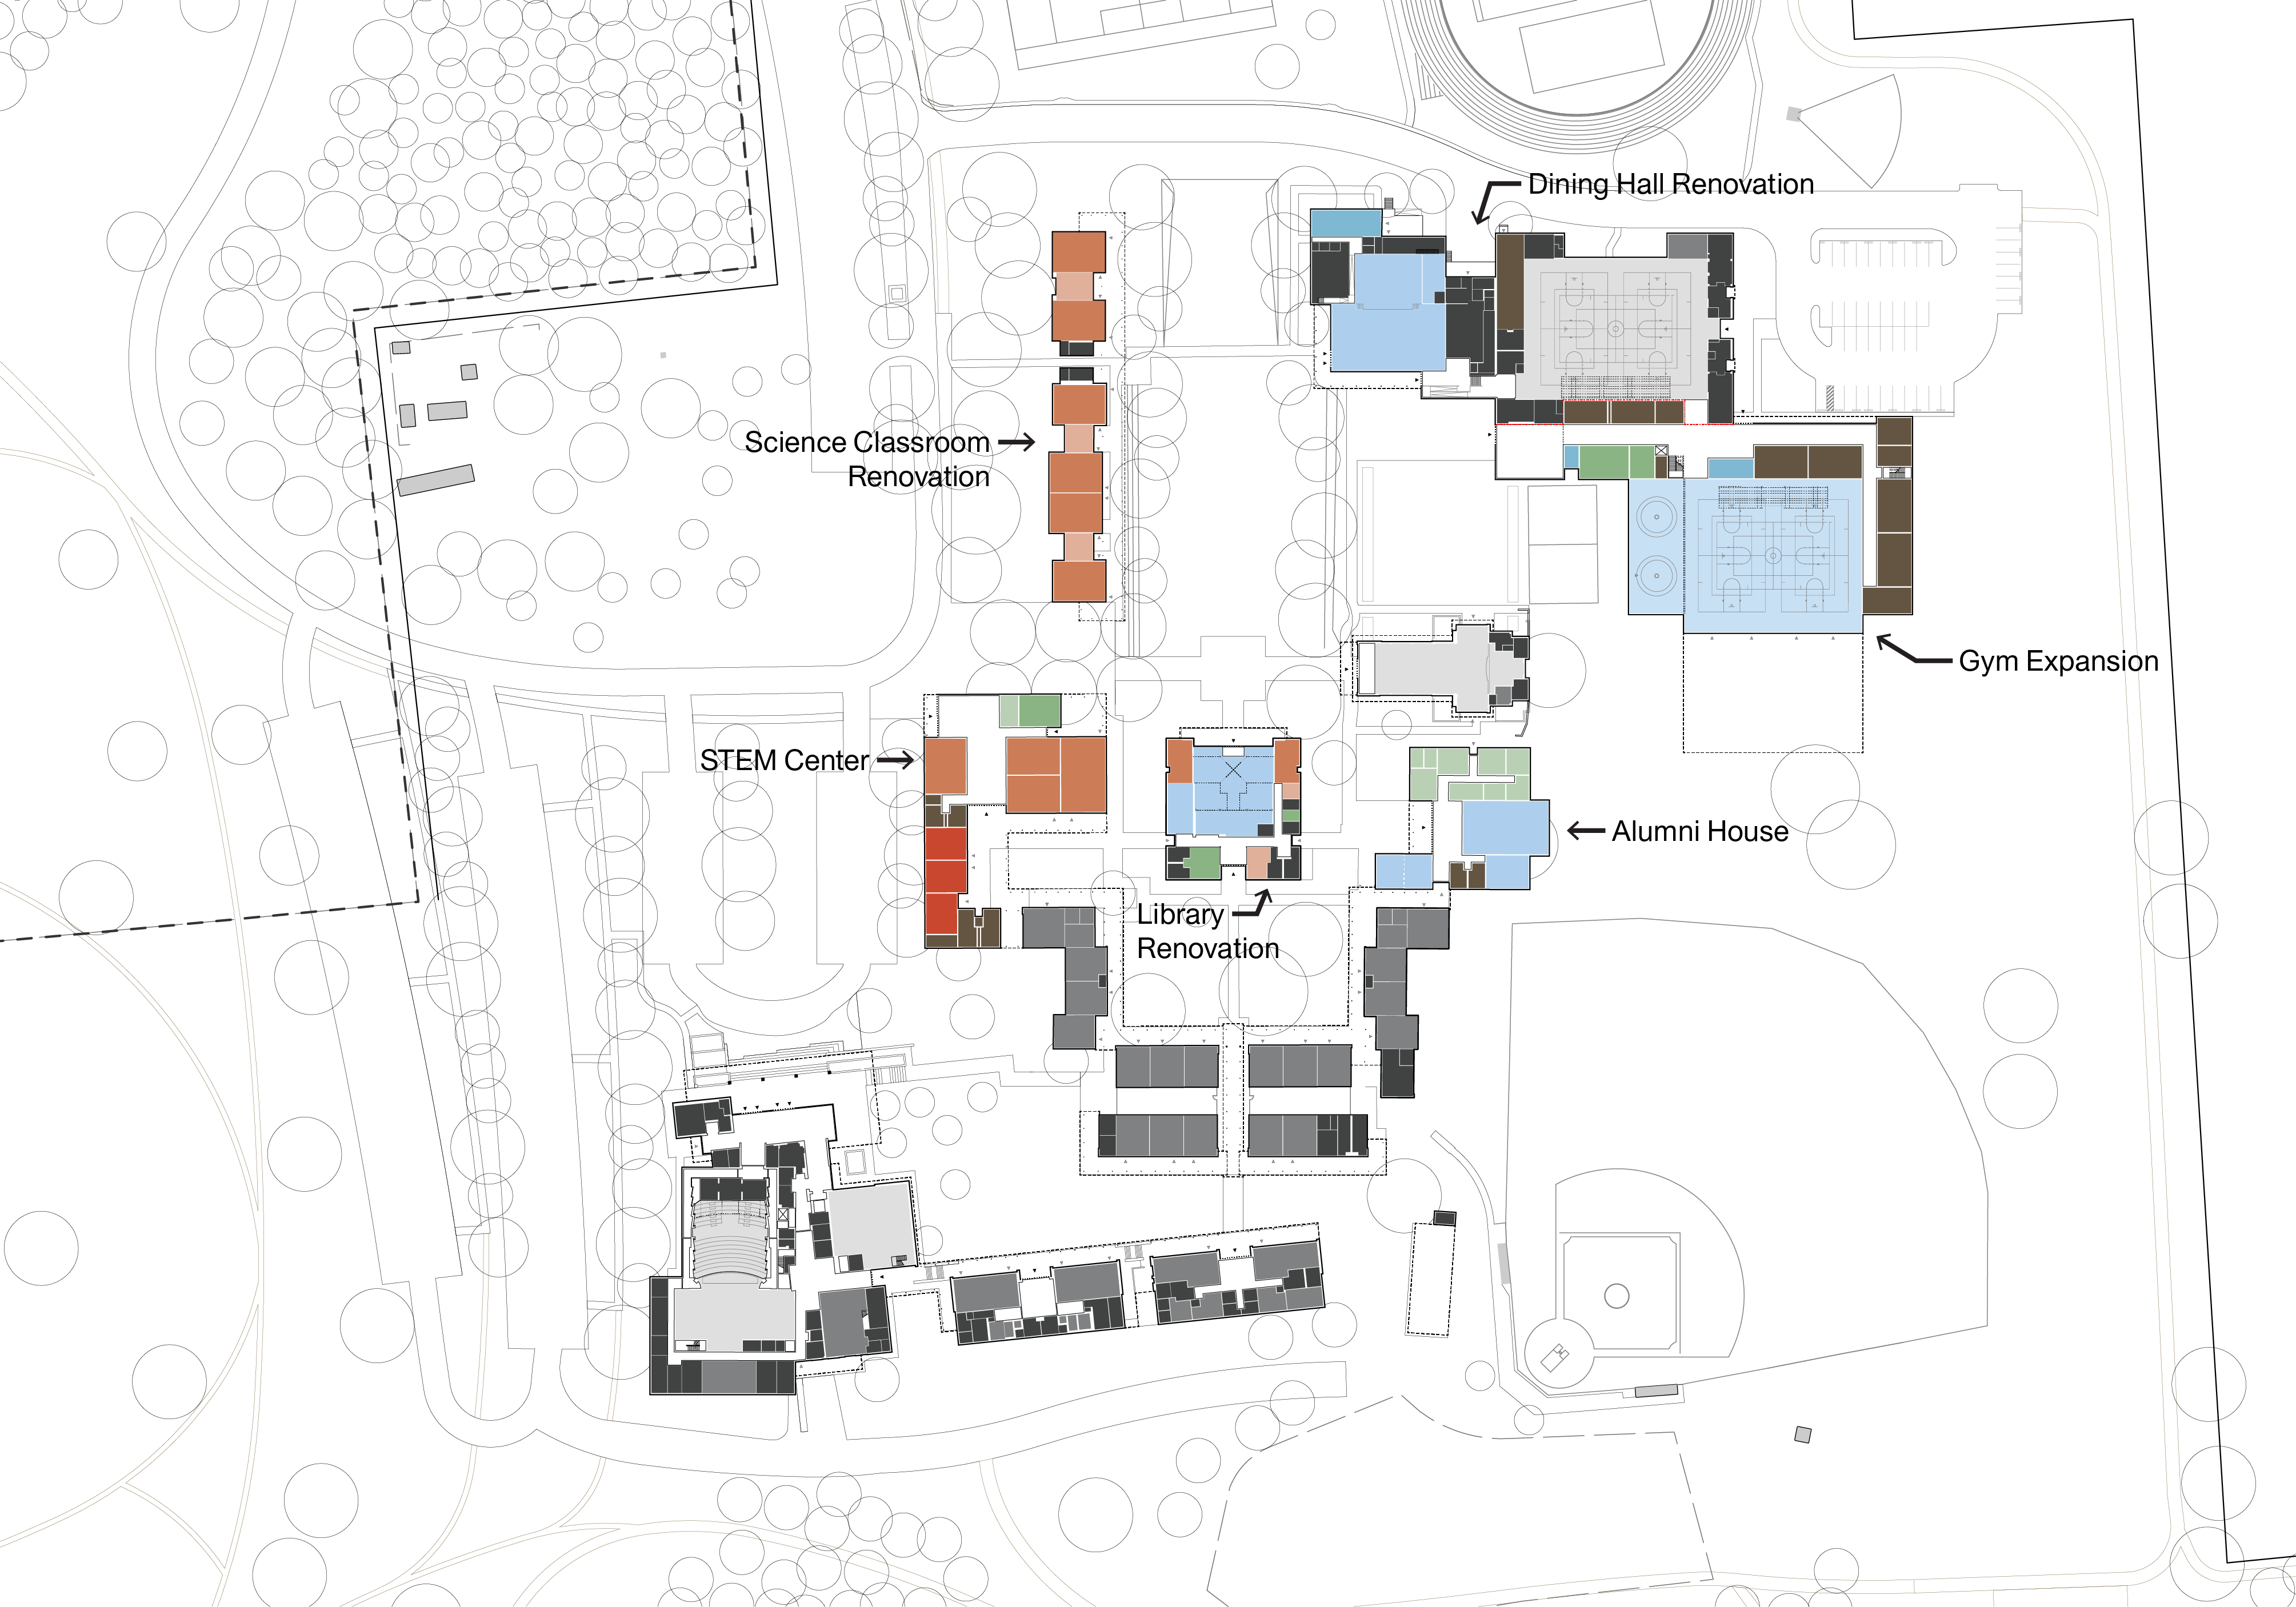 St Andrew S School Master Plan Utile Architecture Planning